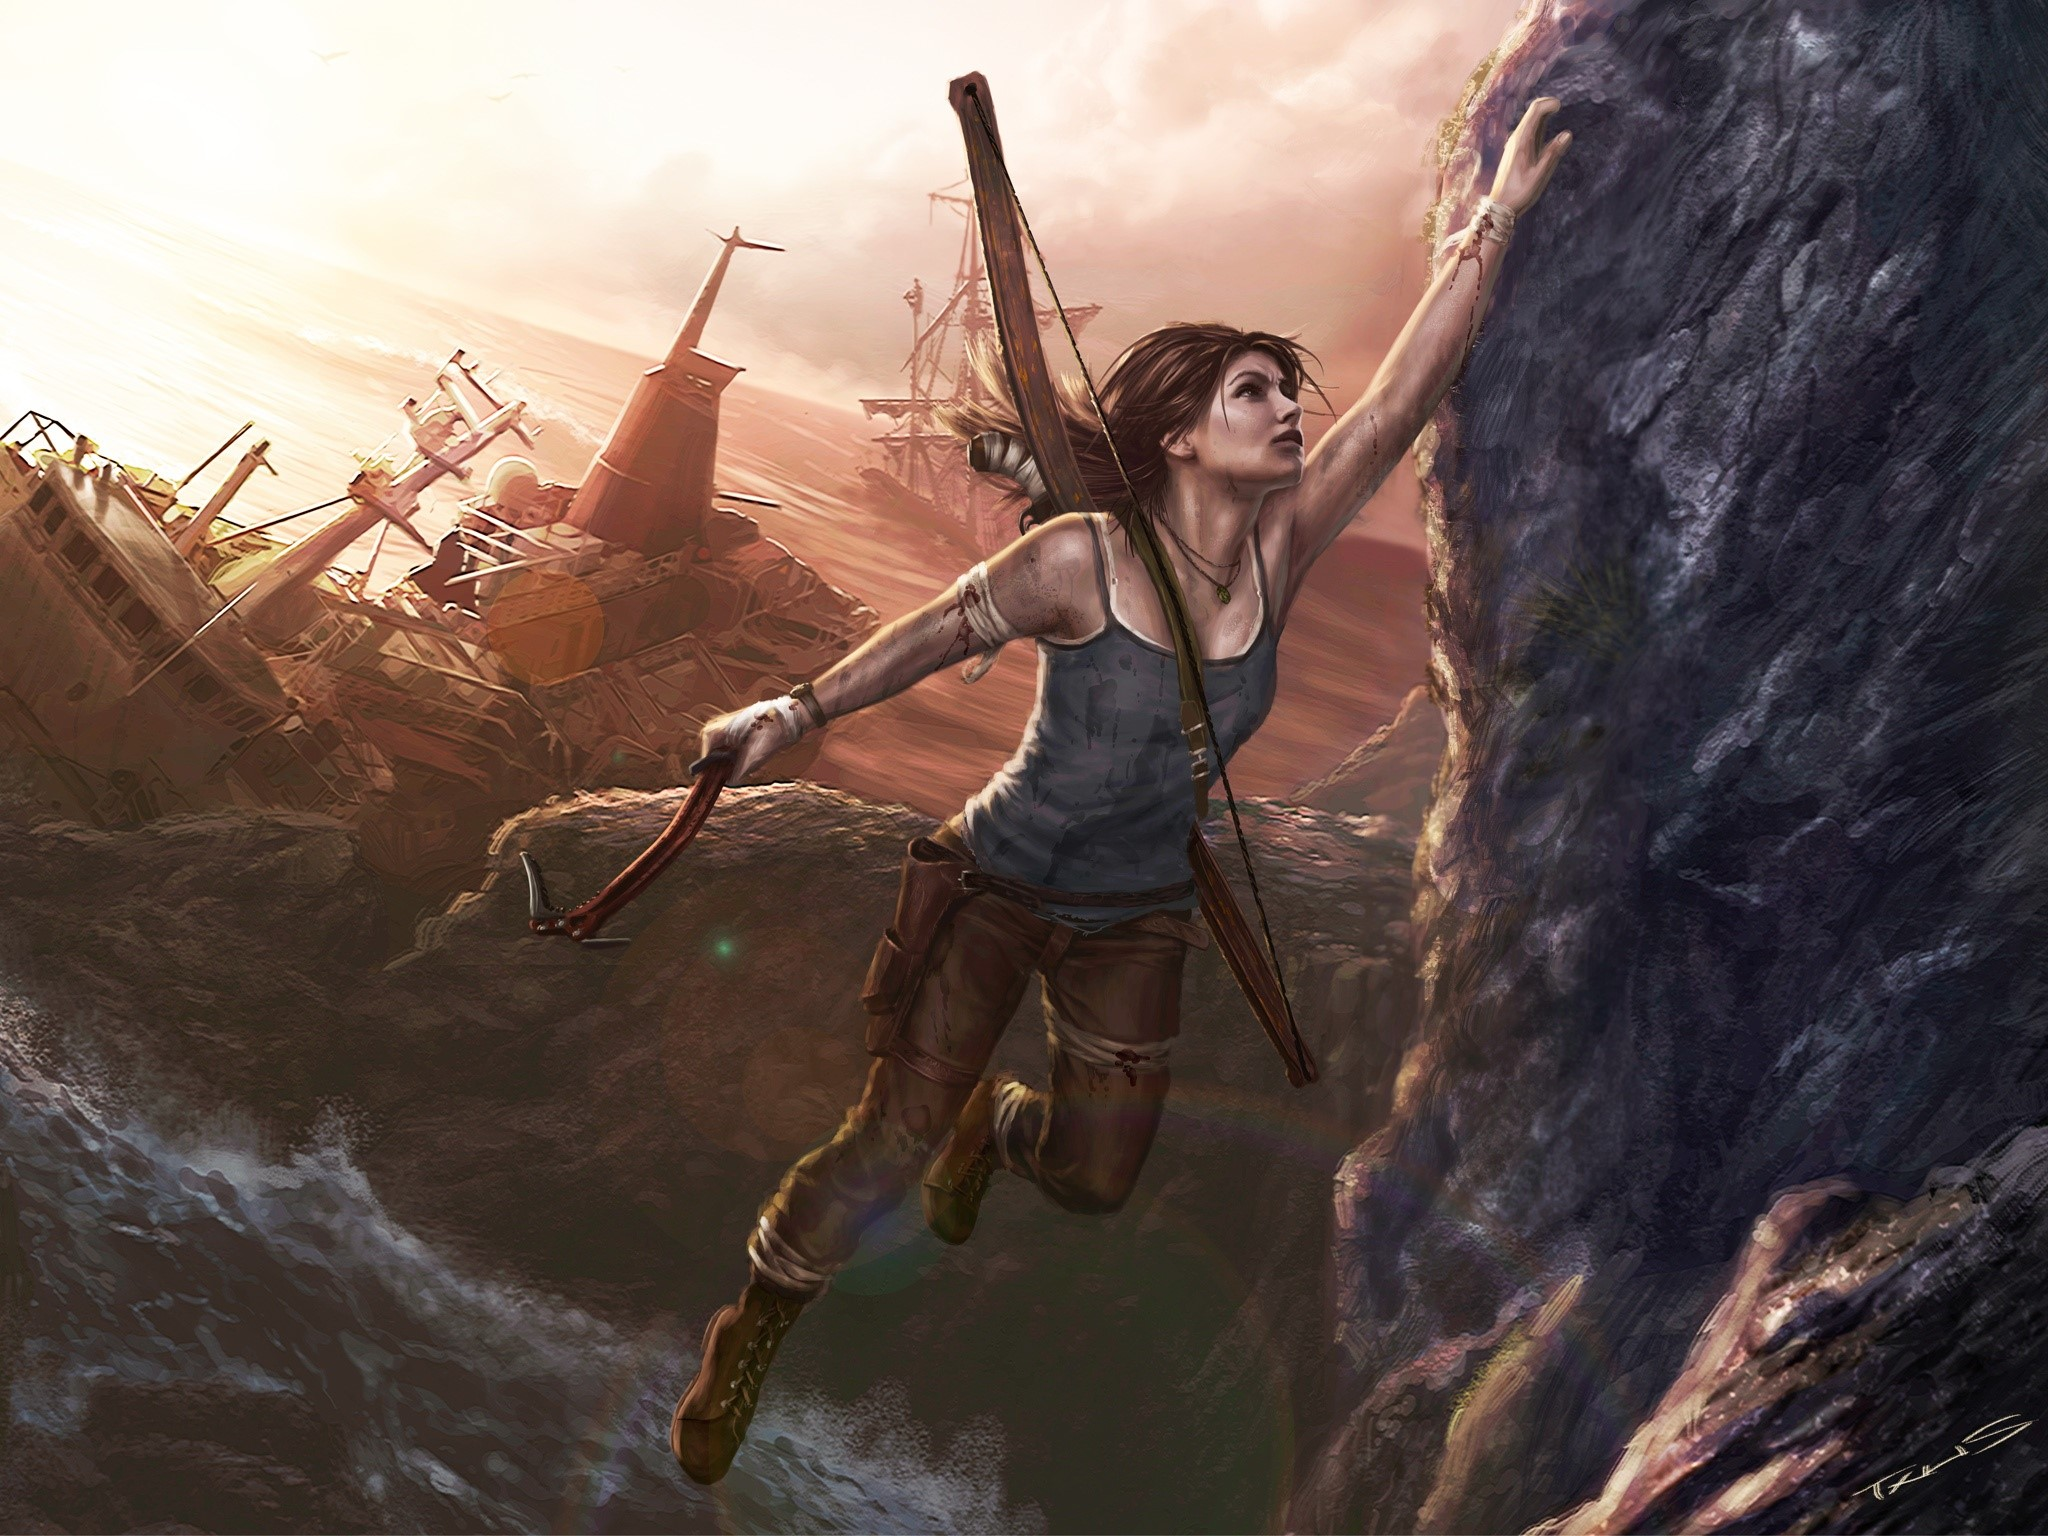 Wallpaper Lara Croft art Images